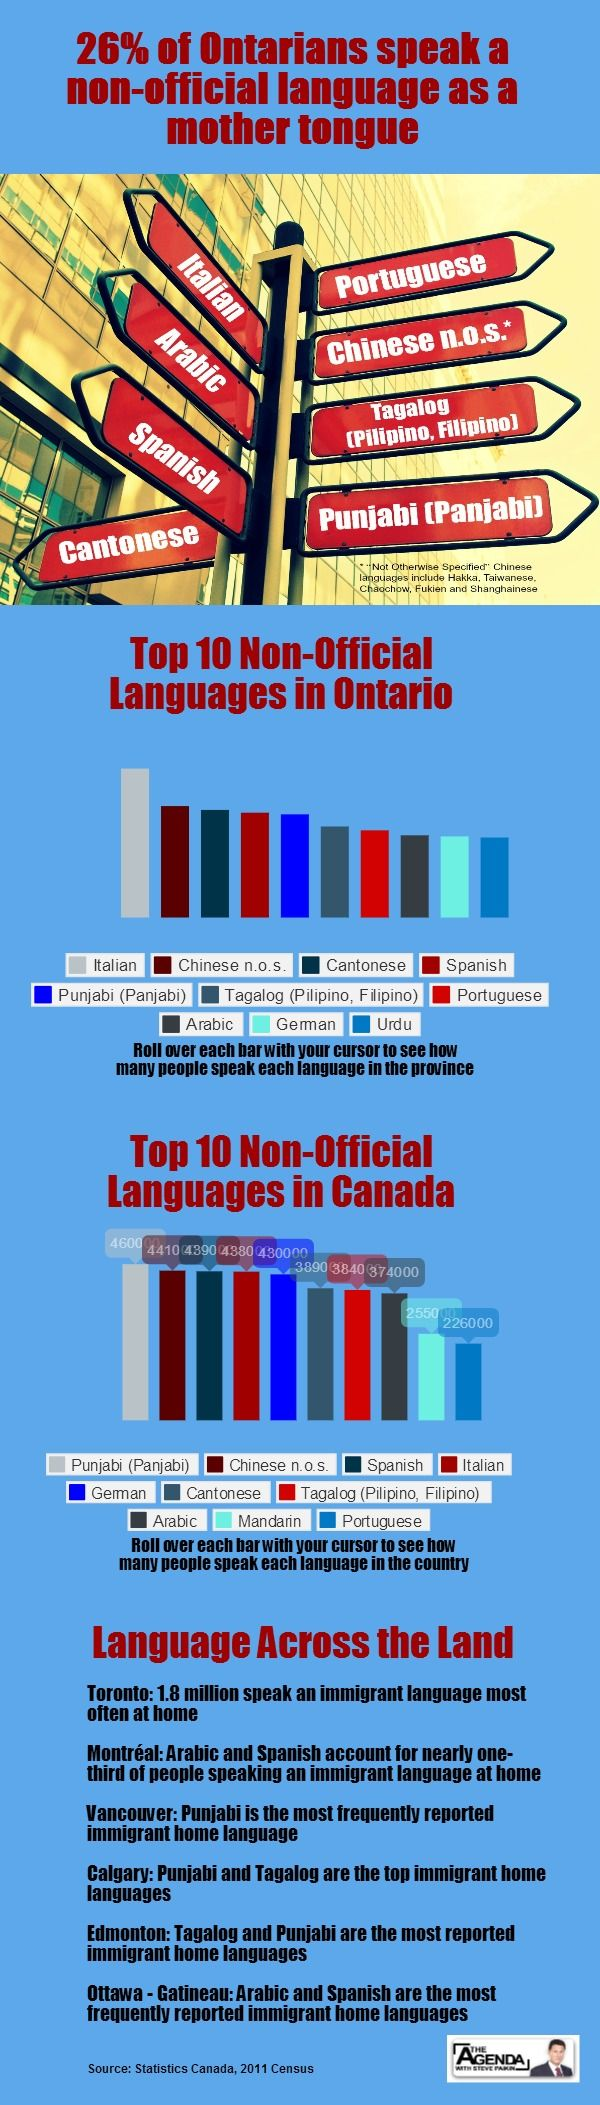 To get a better sense of the diversity of language in Ontario and just which languages are spoken most prevalently, take a look at this interactive graphic